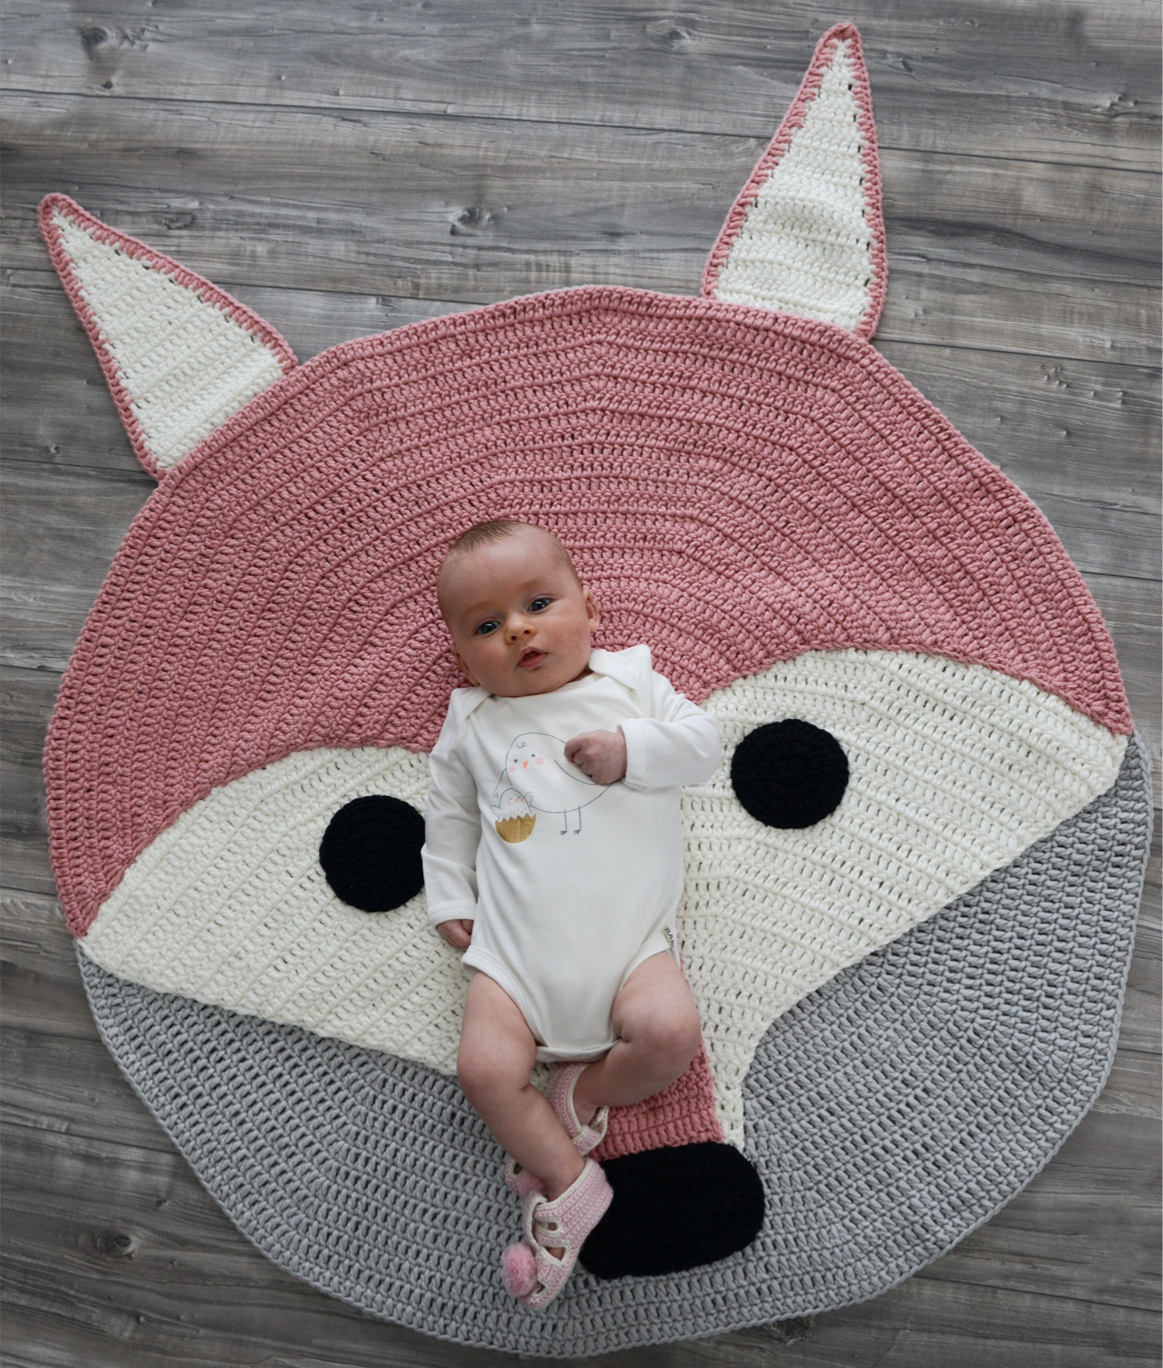 Handmade Crochet Rug Pink Rug Pink Carpet Nursery: Would Andrew Allow This Haha? Available In